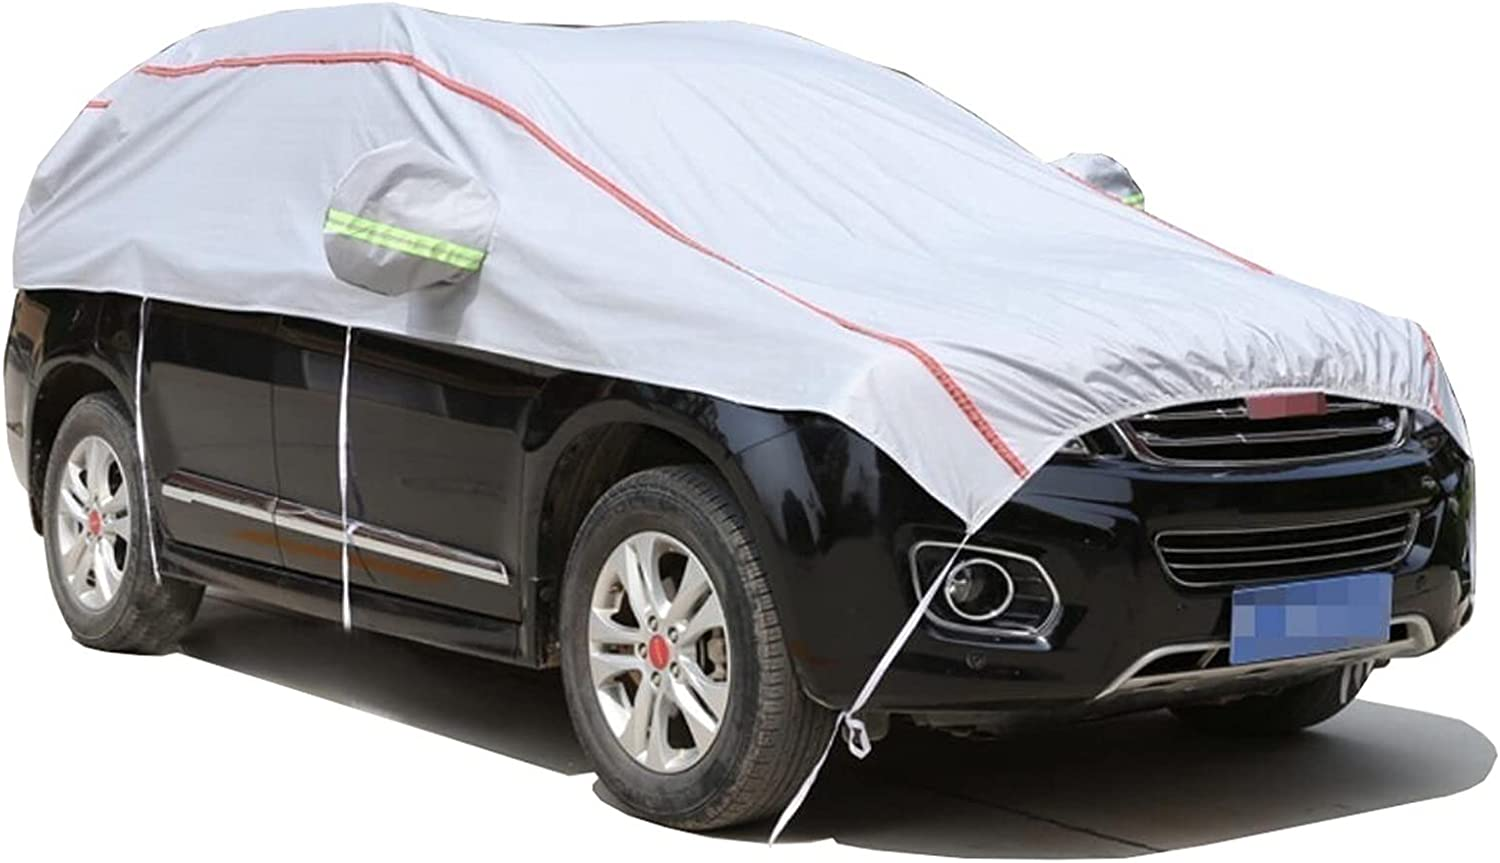 Saladplates-LXM Half car Cover Compatible Class GLA with 55% OFF 2021new shipping free Brabus